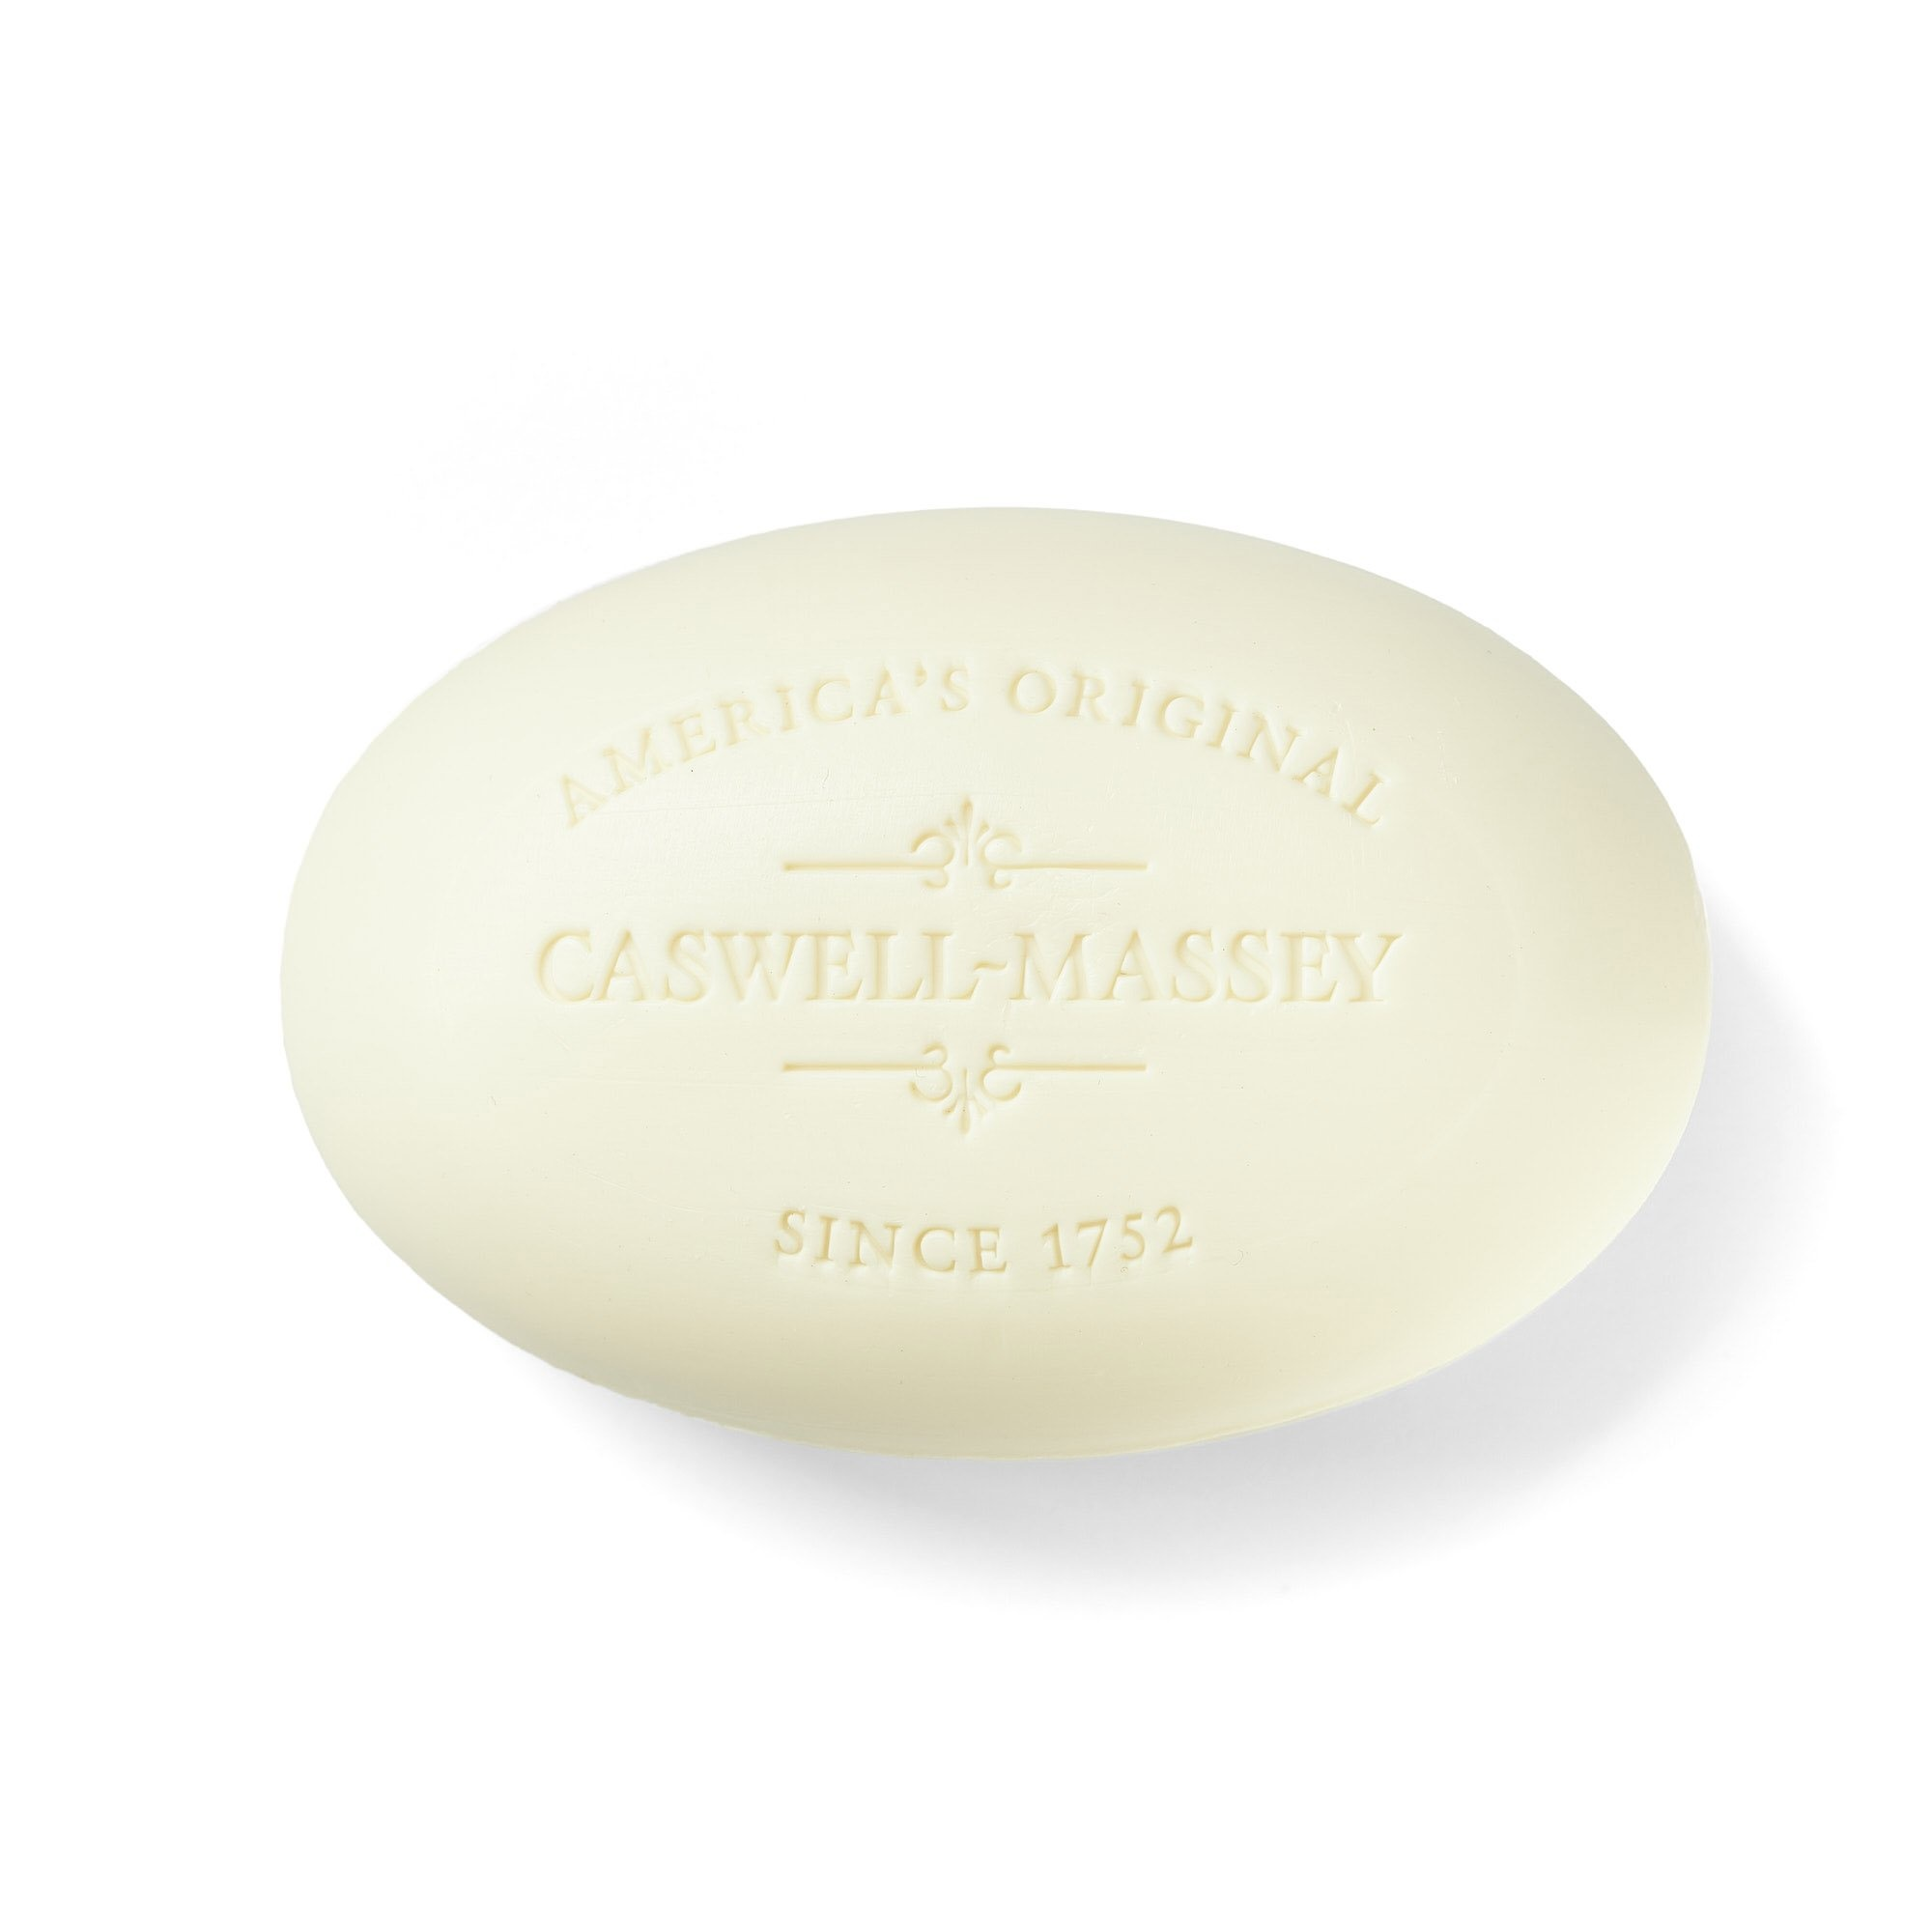 Caswell Massey Centuries Almond & Aloe Bar Soap